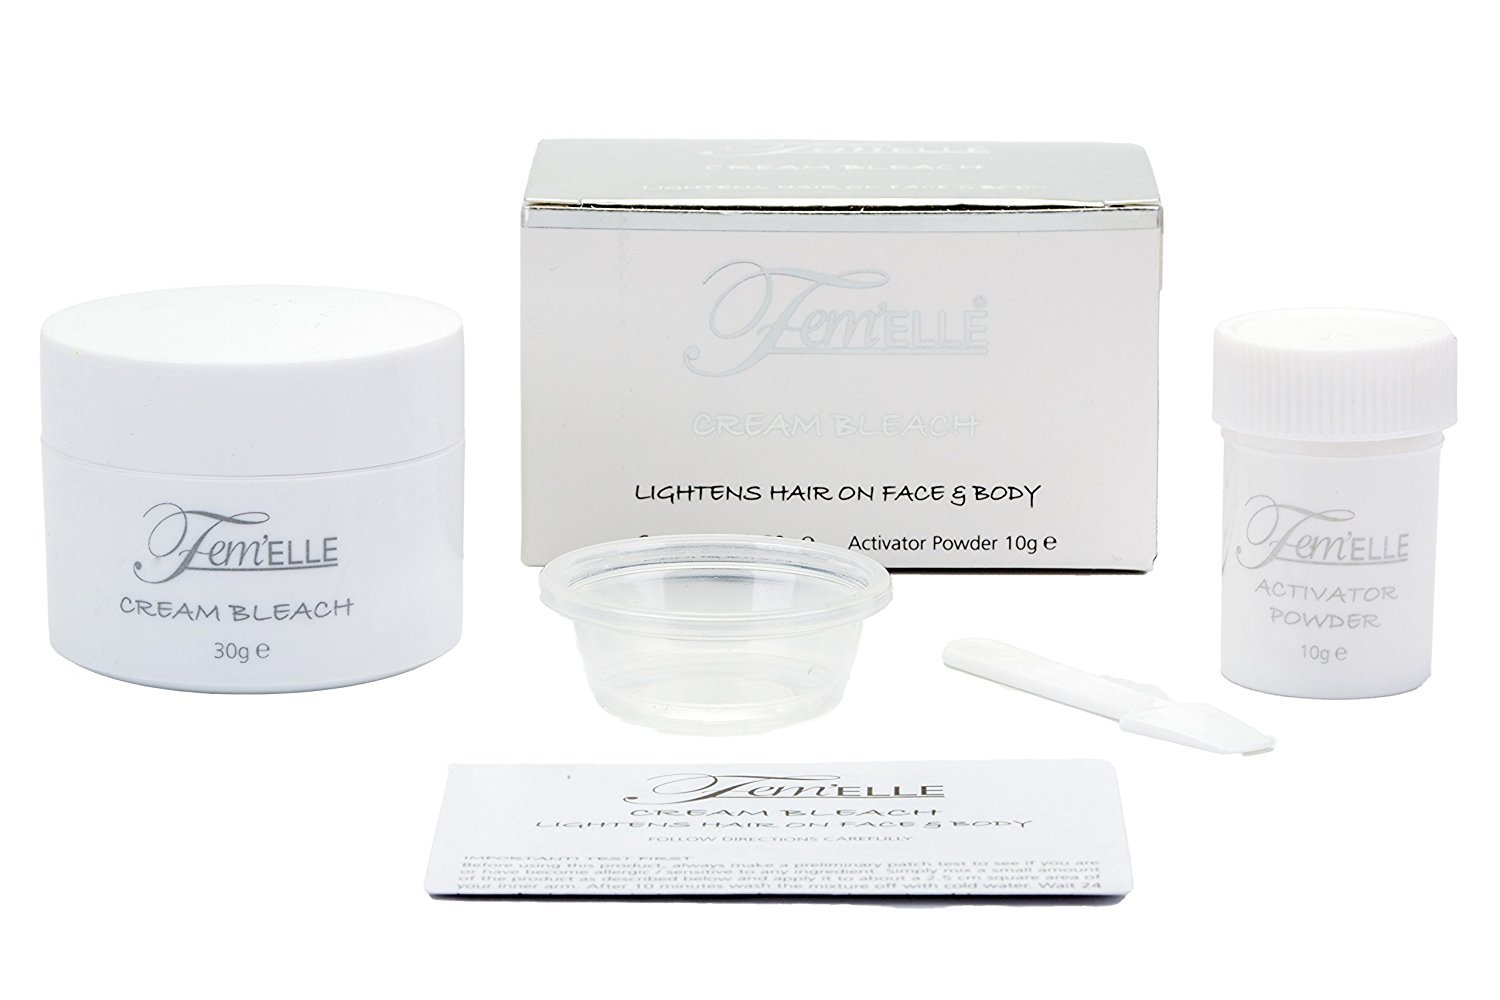 Femelle Cream bleach lightens hair on face and body Cream bleach 30g Activator powder 10g Fem' ELLE